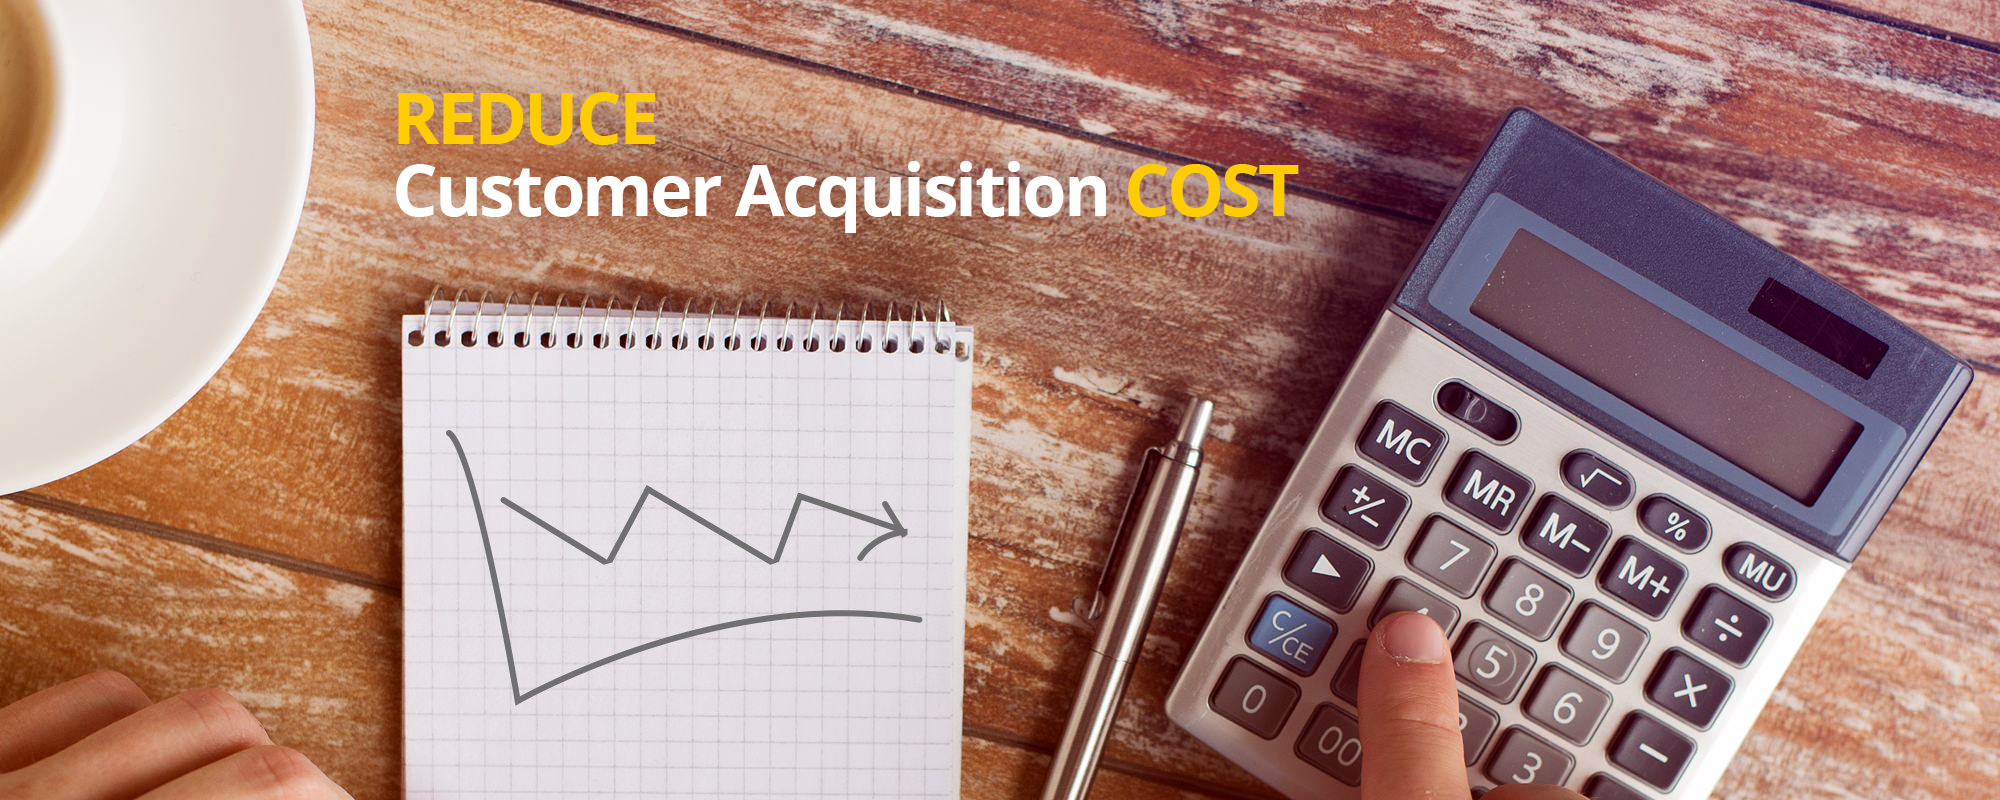 7 Strategies to Keep Customer Acquisition Cost Minimum